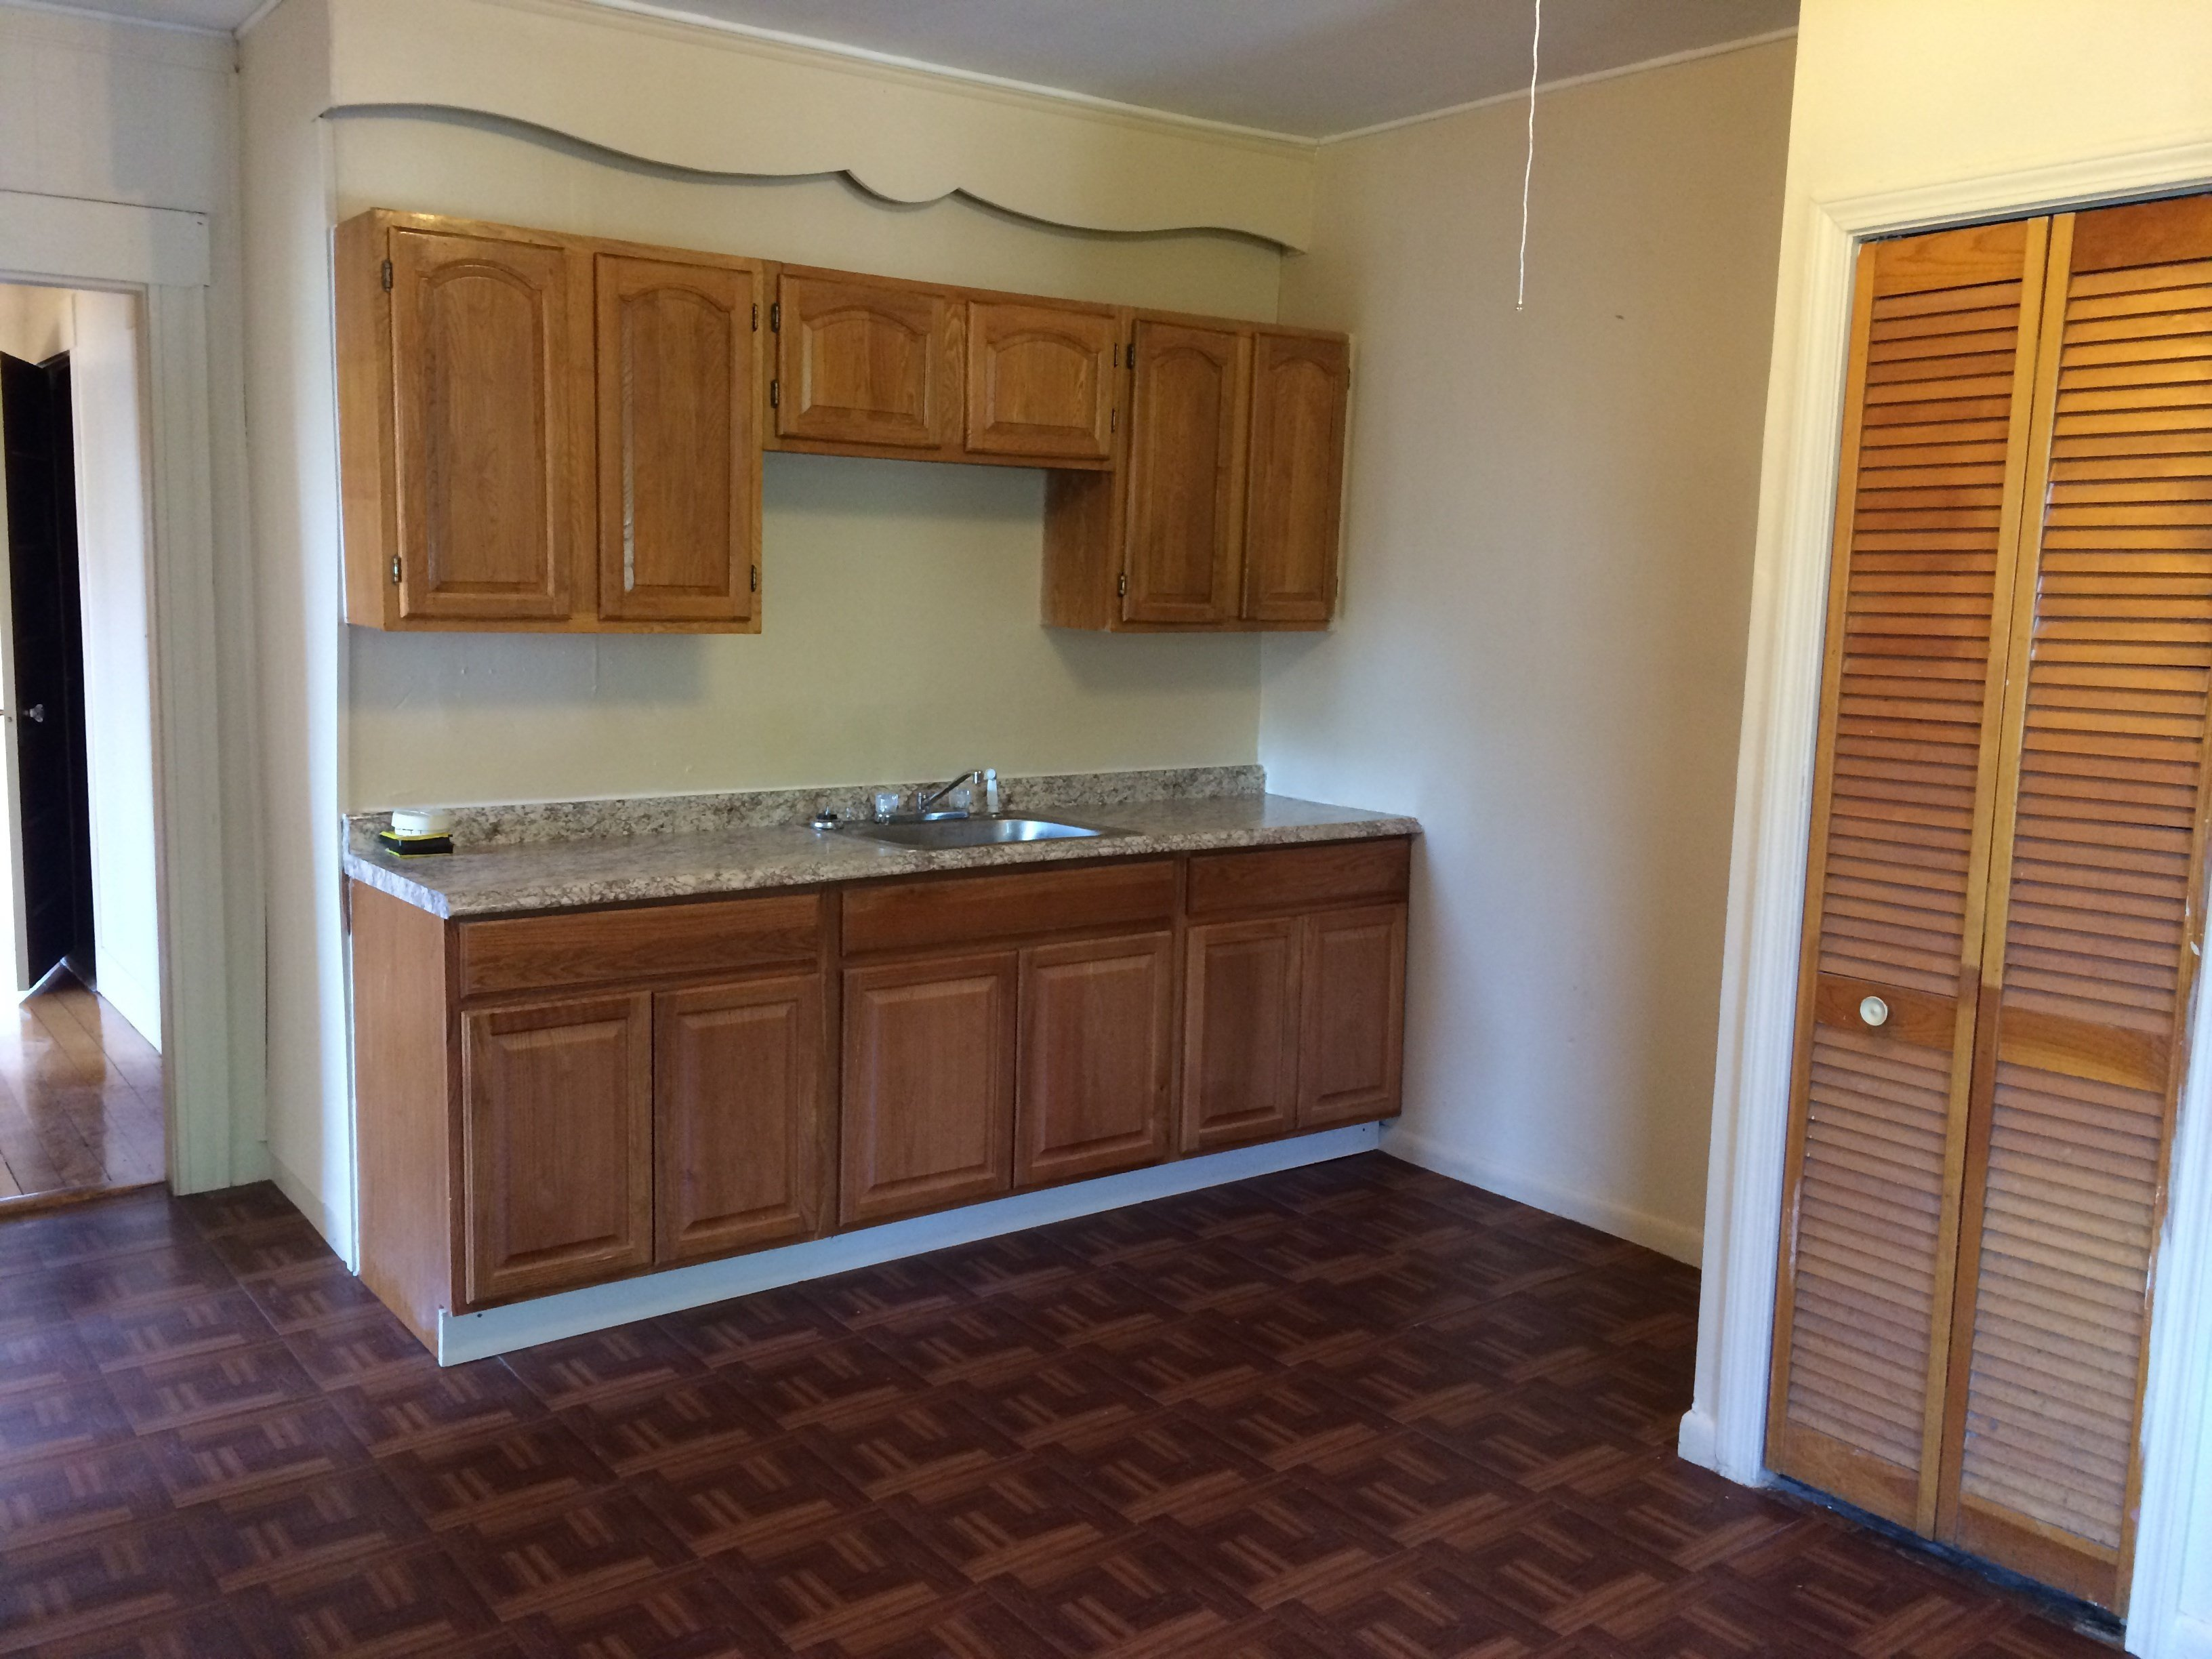 Best Section 8 Housing And Apartments For Rent In Worcester With Pictures